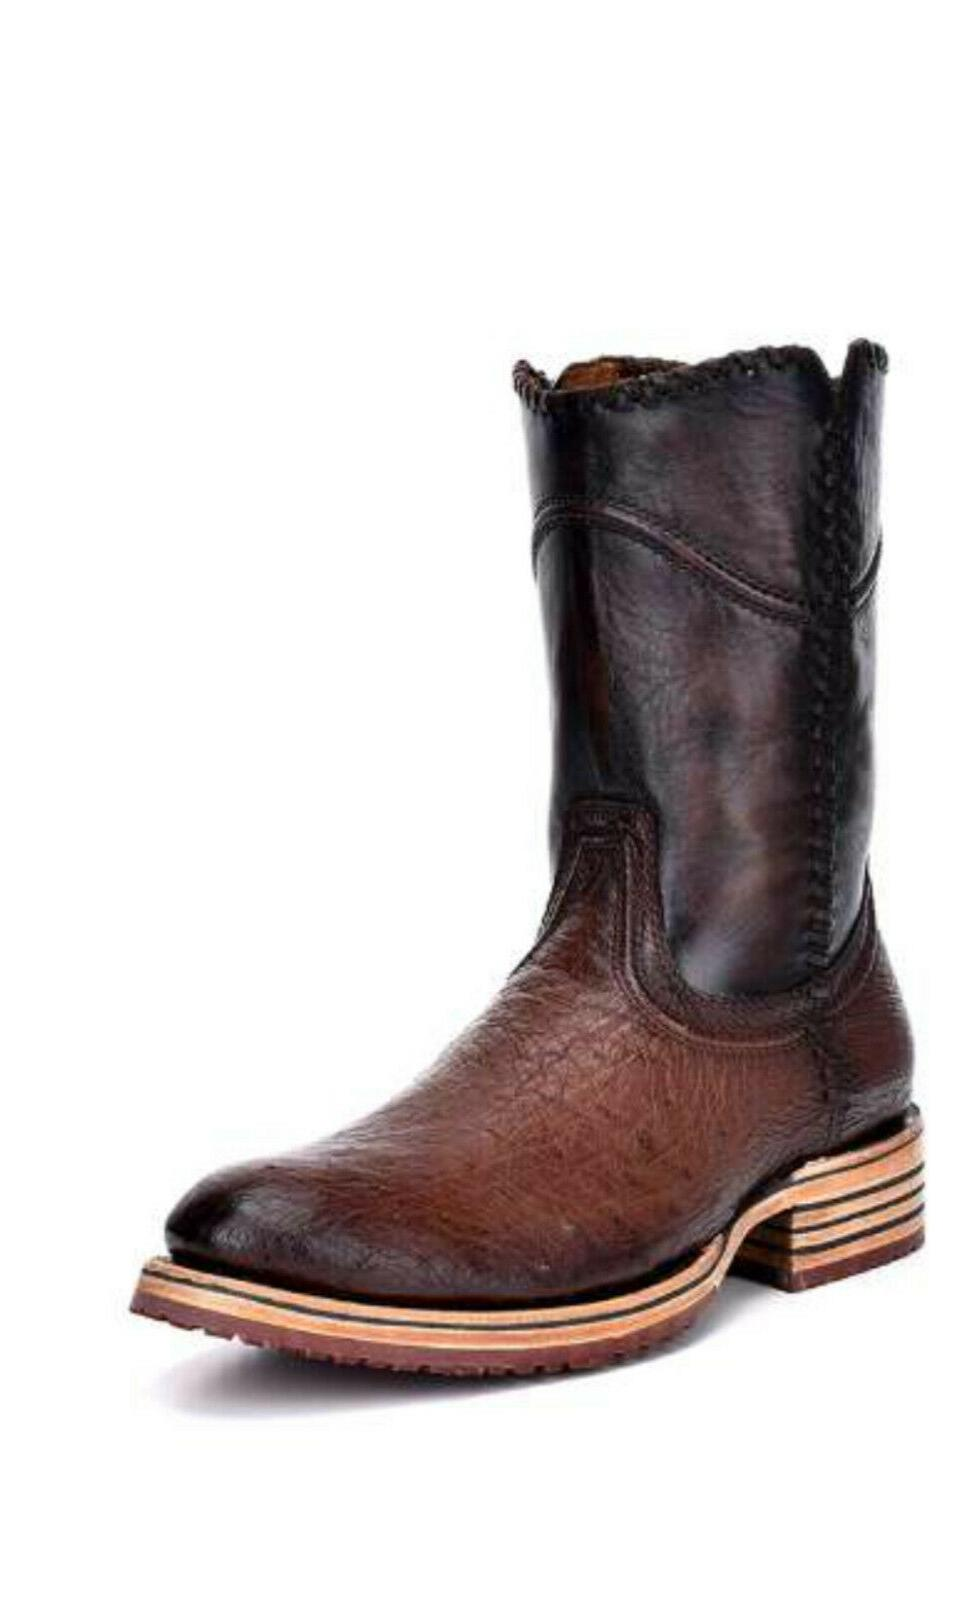 3p02ab smooth ostrich boots